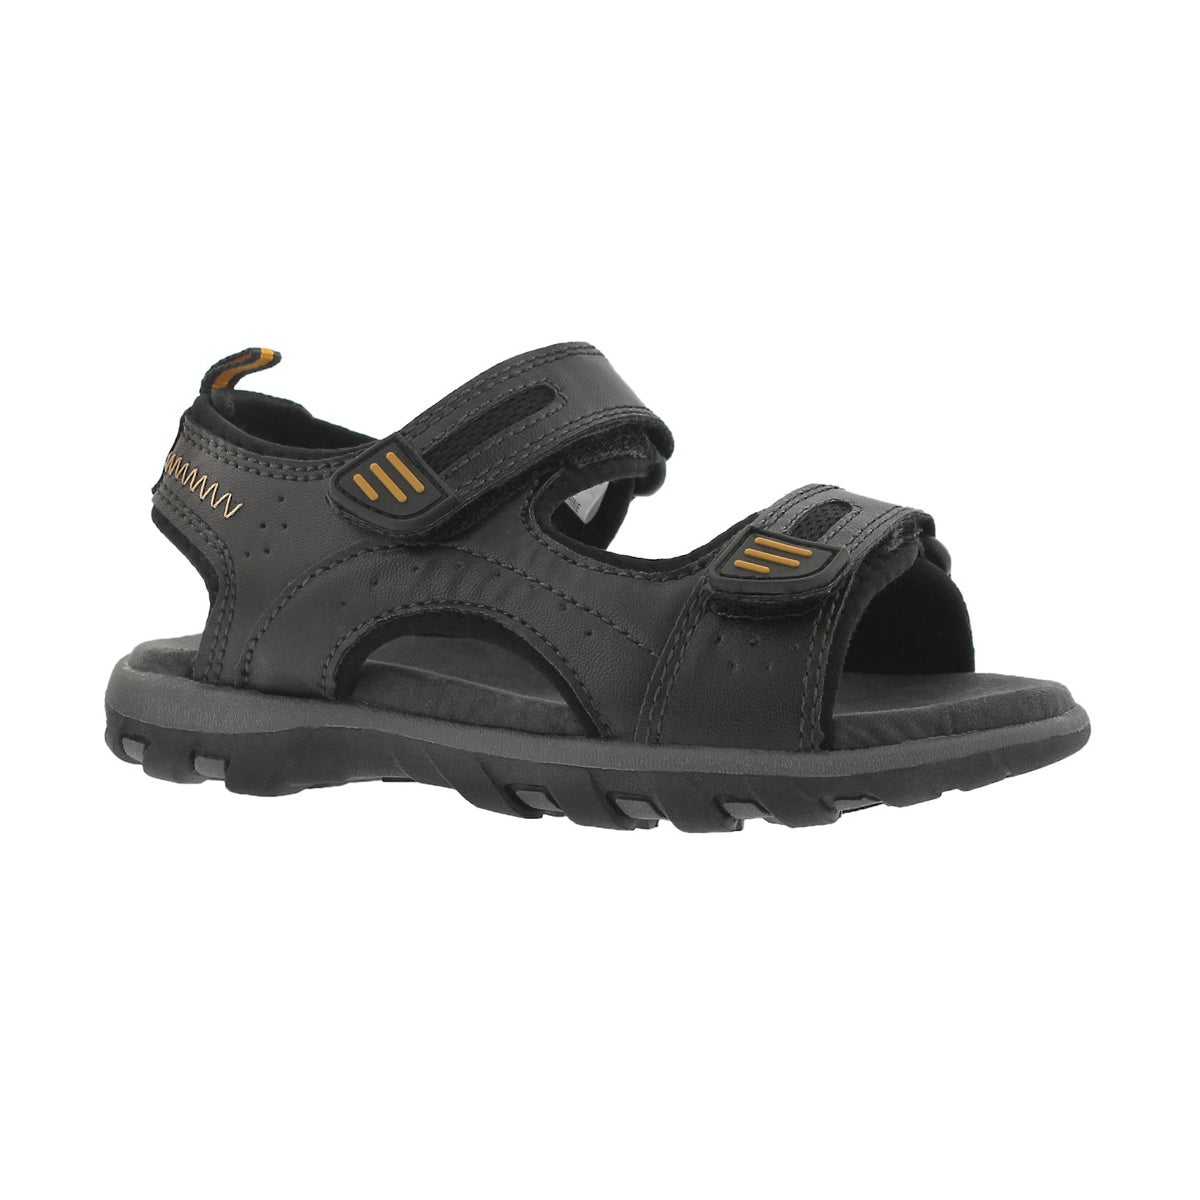 Boys' EMMETT 2 black 2 strap sport sandals